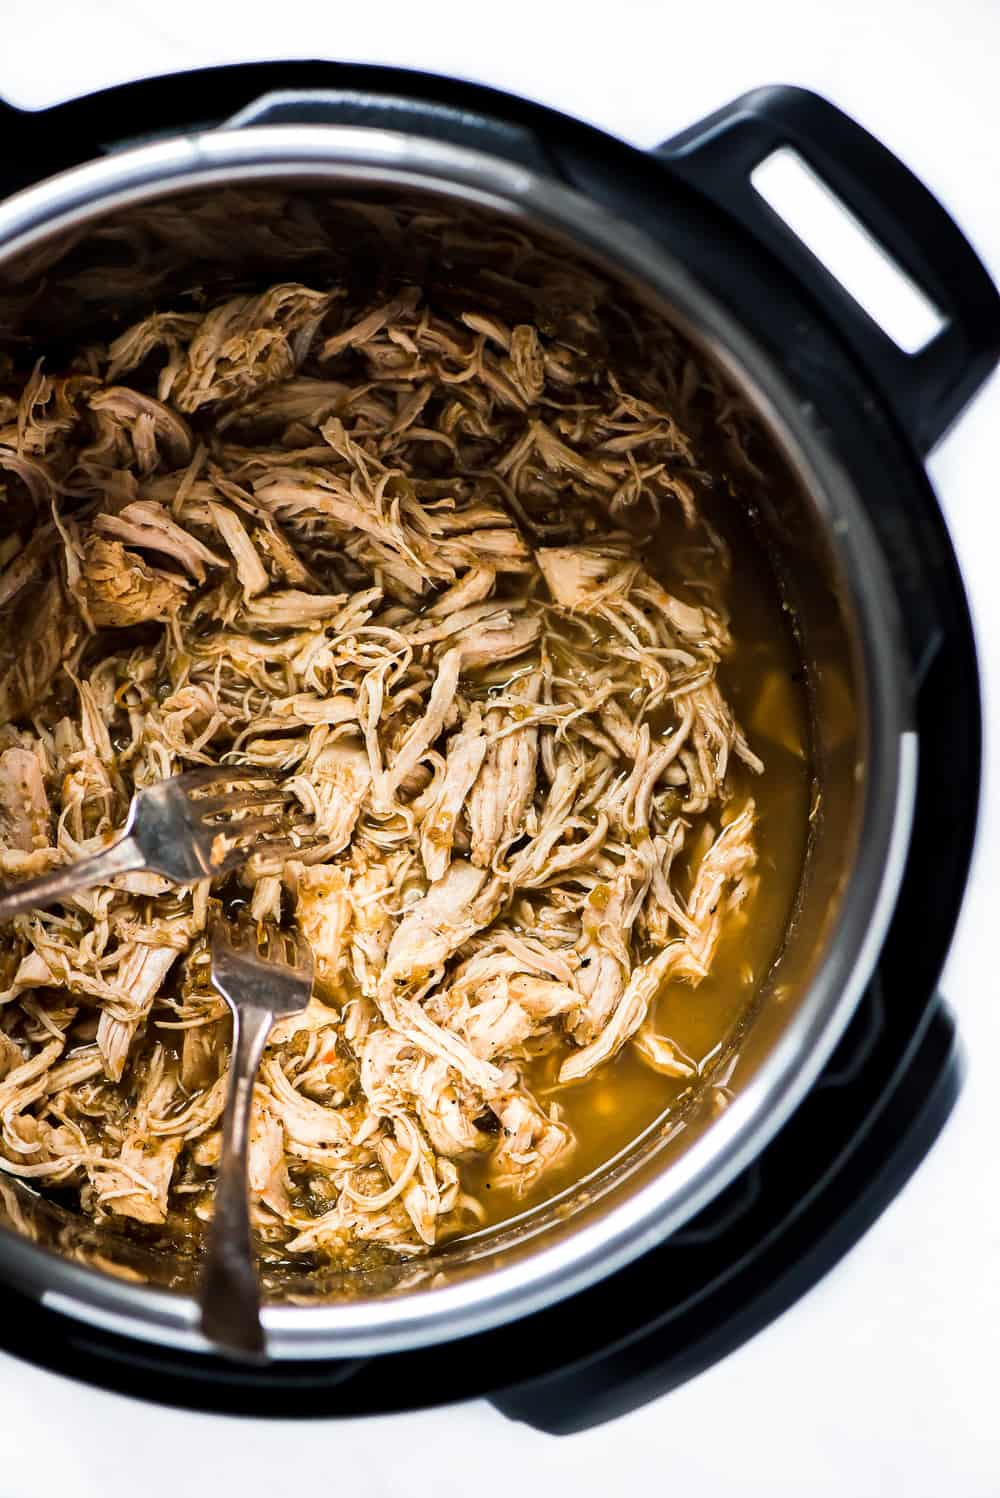 Cooked chicken in the crock pot.